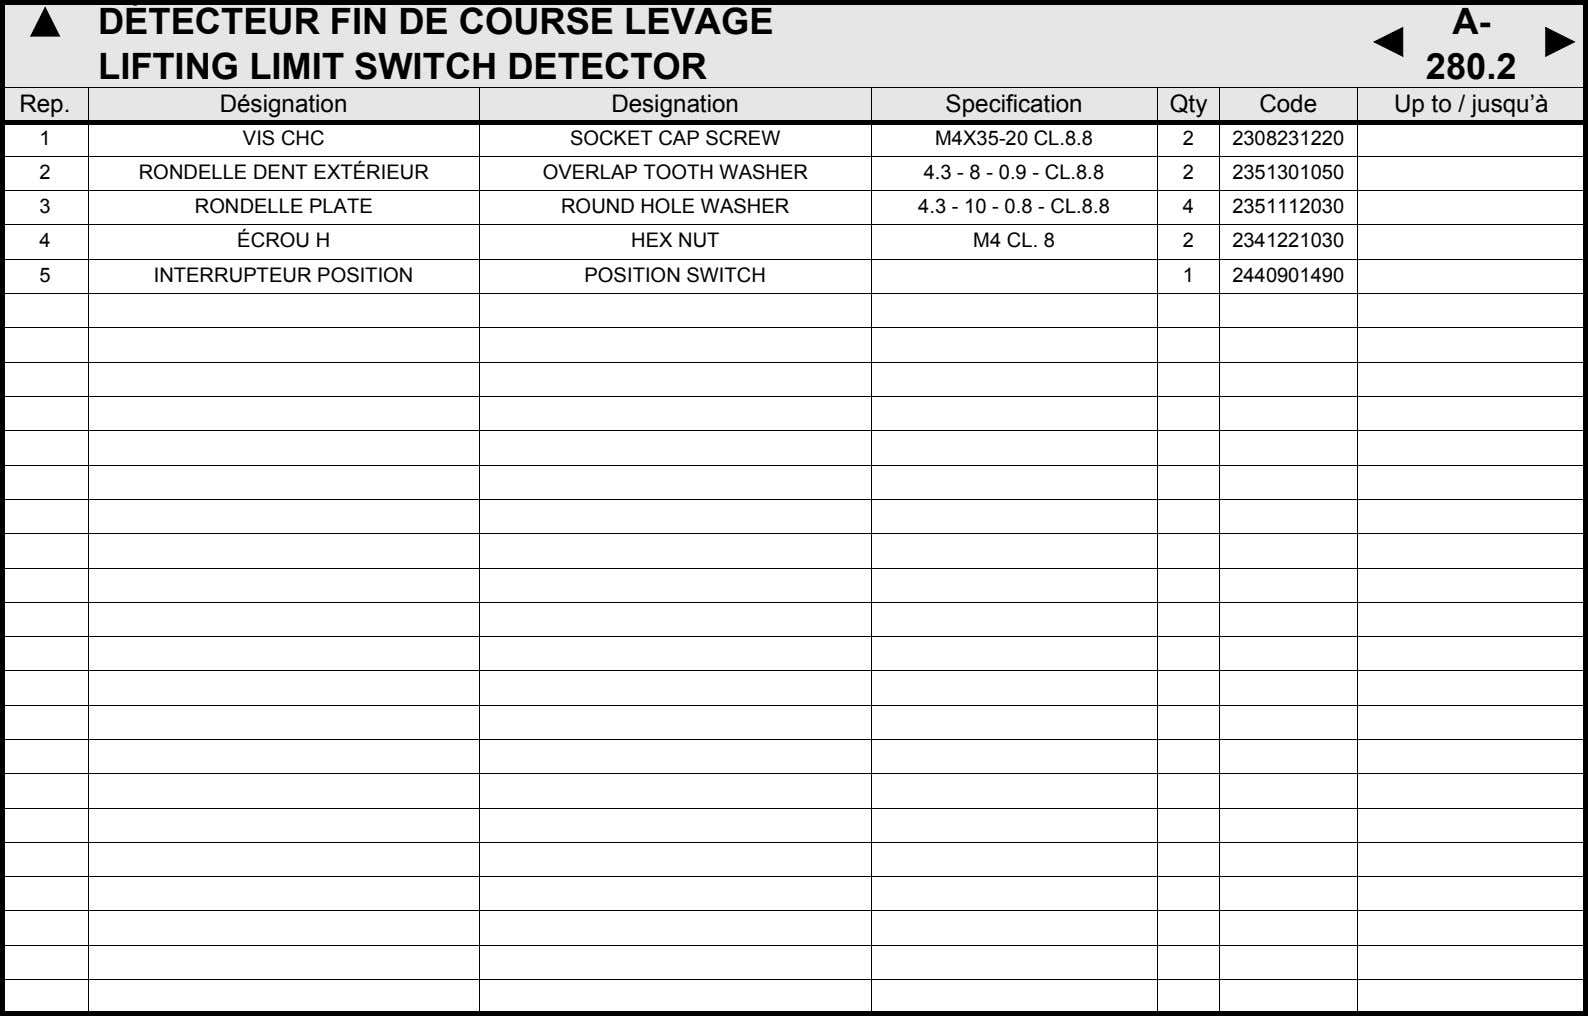 DÉTECTEUR FIN DE COURSE LEVAGE LIFTING LIMIT SWITCH DETECTOR A- 280.2 Rep. Désignation Designation Specification